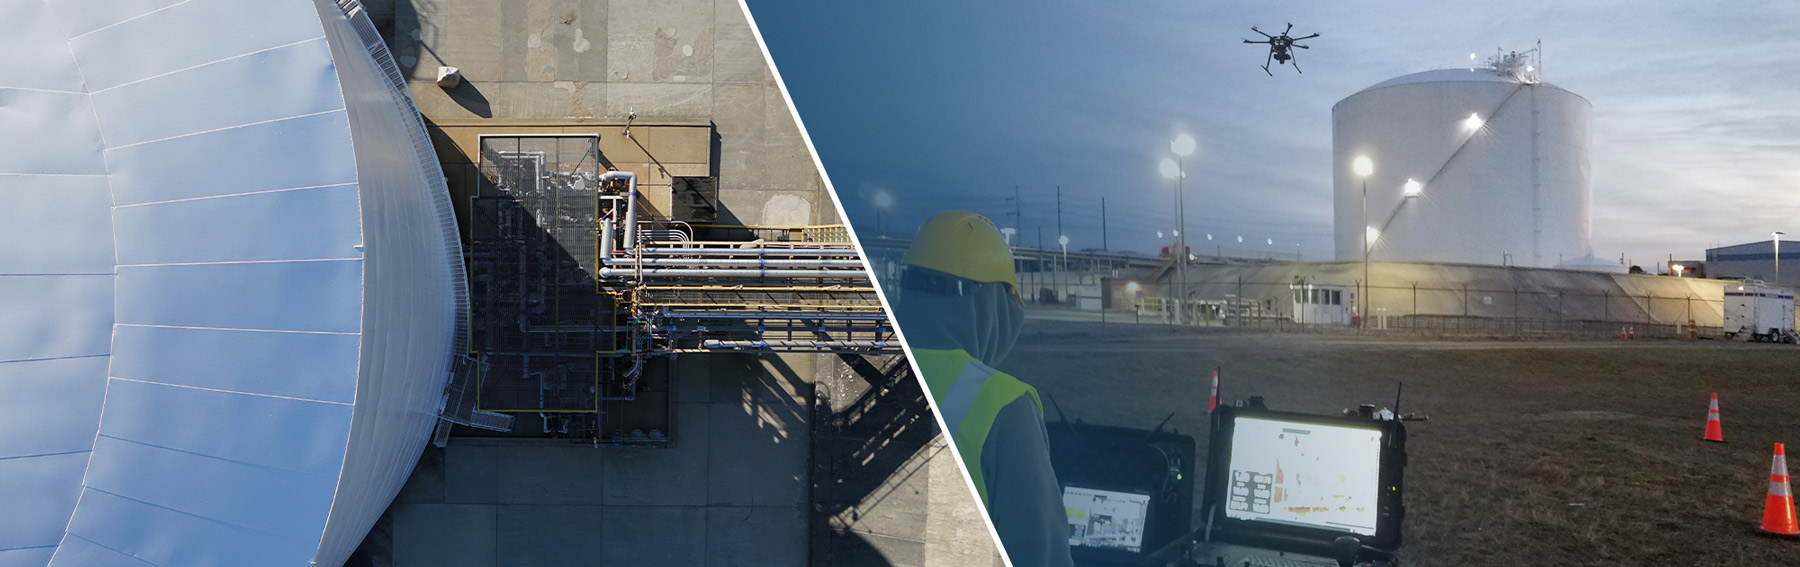 lng tank drone inspection services